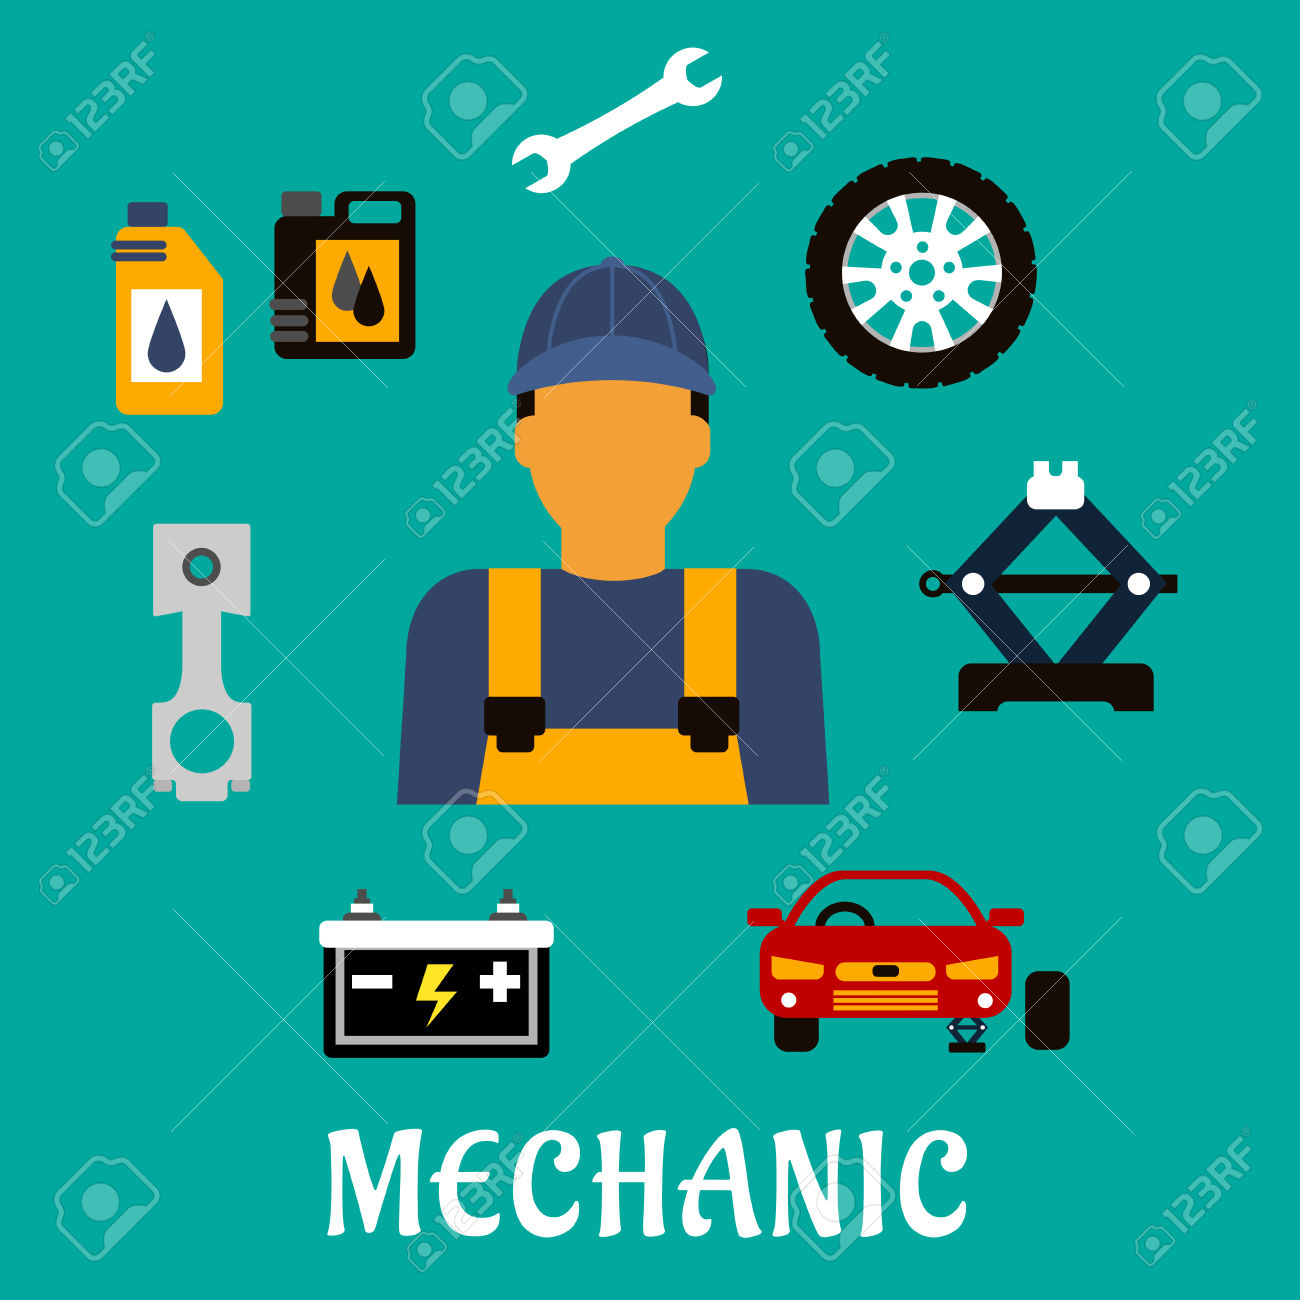 Mechanic Profession Flat Concept With Man In Uniform Overalls.